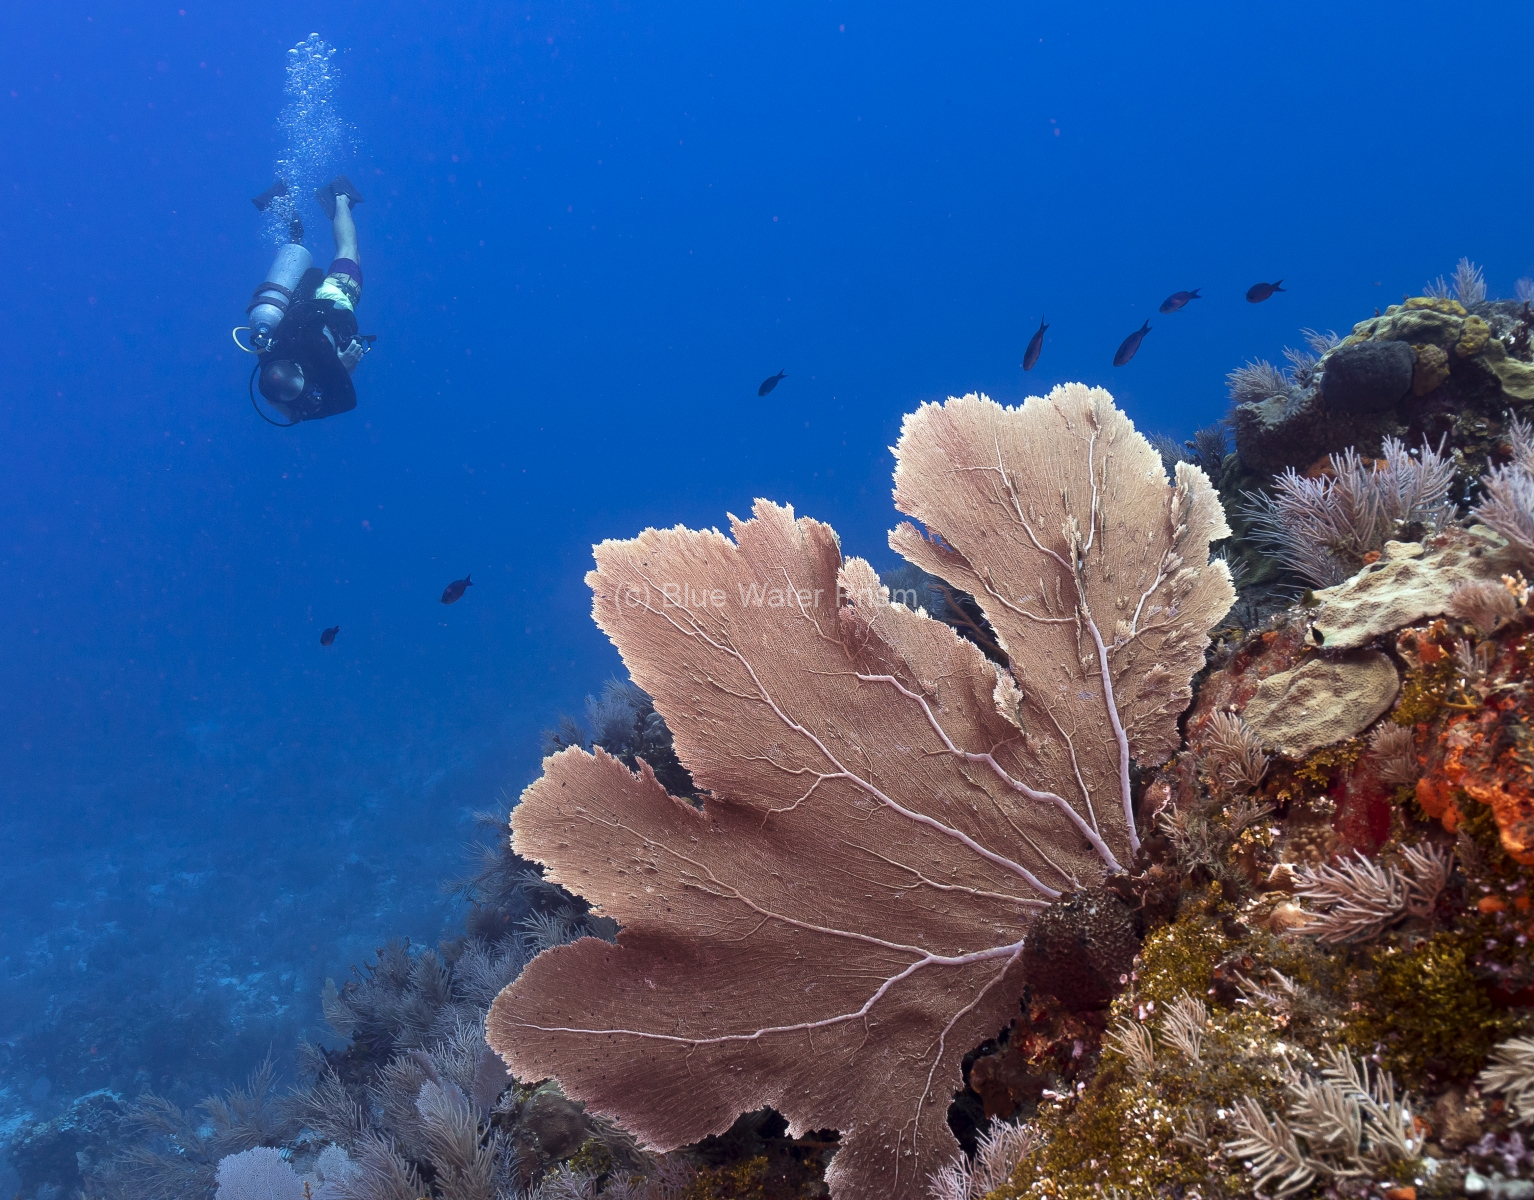 Diver at Maracaibo Reef in Cozumel